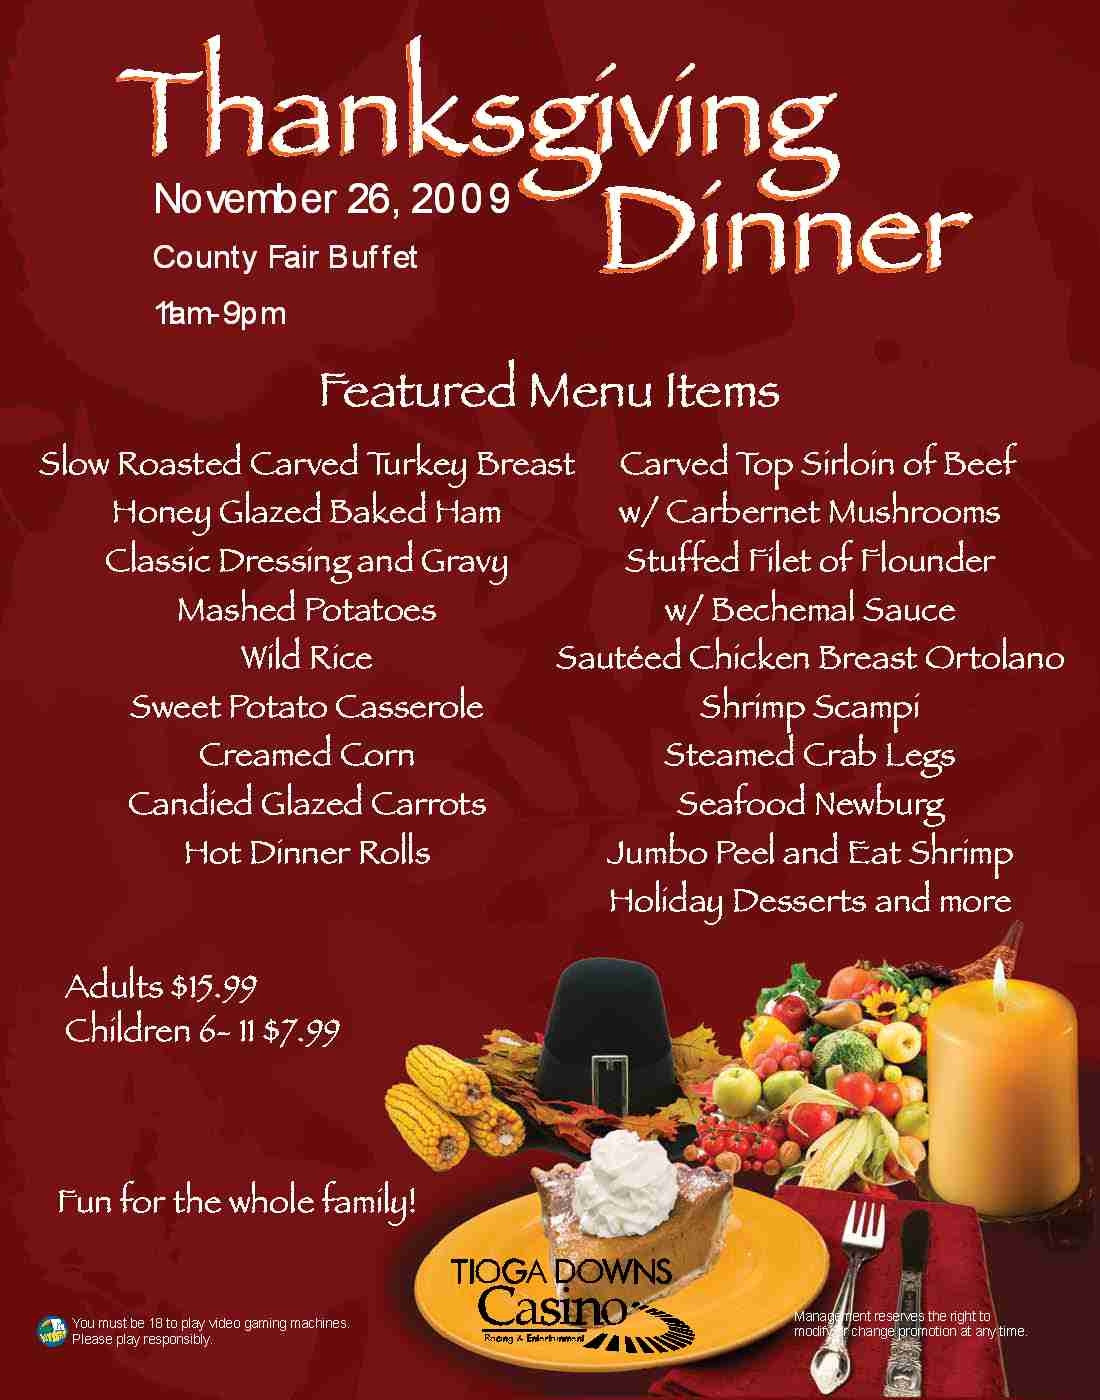 Traditional Thanksgiving Dinner Menu List  Typical Thanksgiving Menu Frompo 1